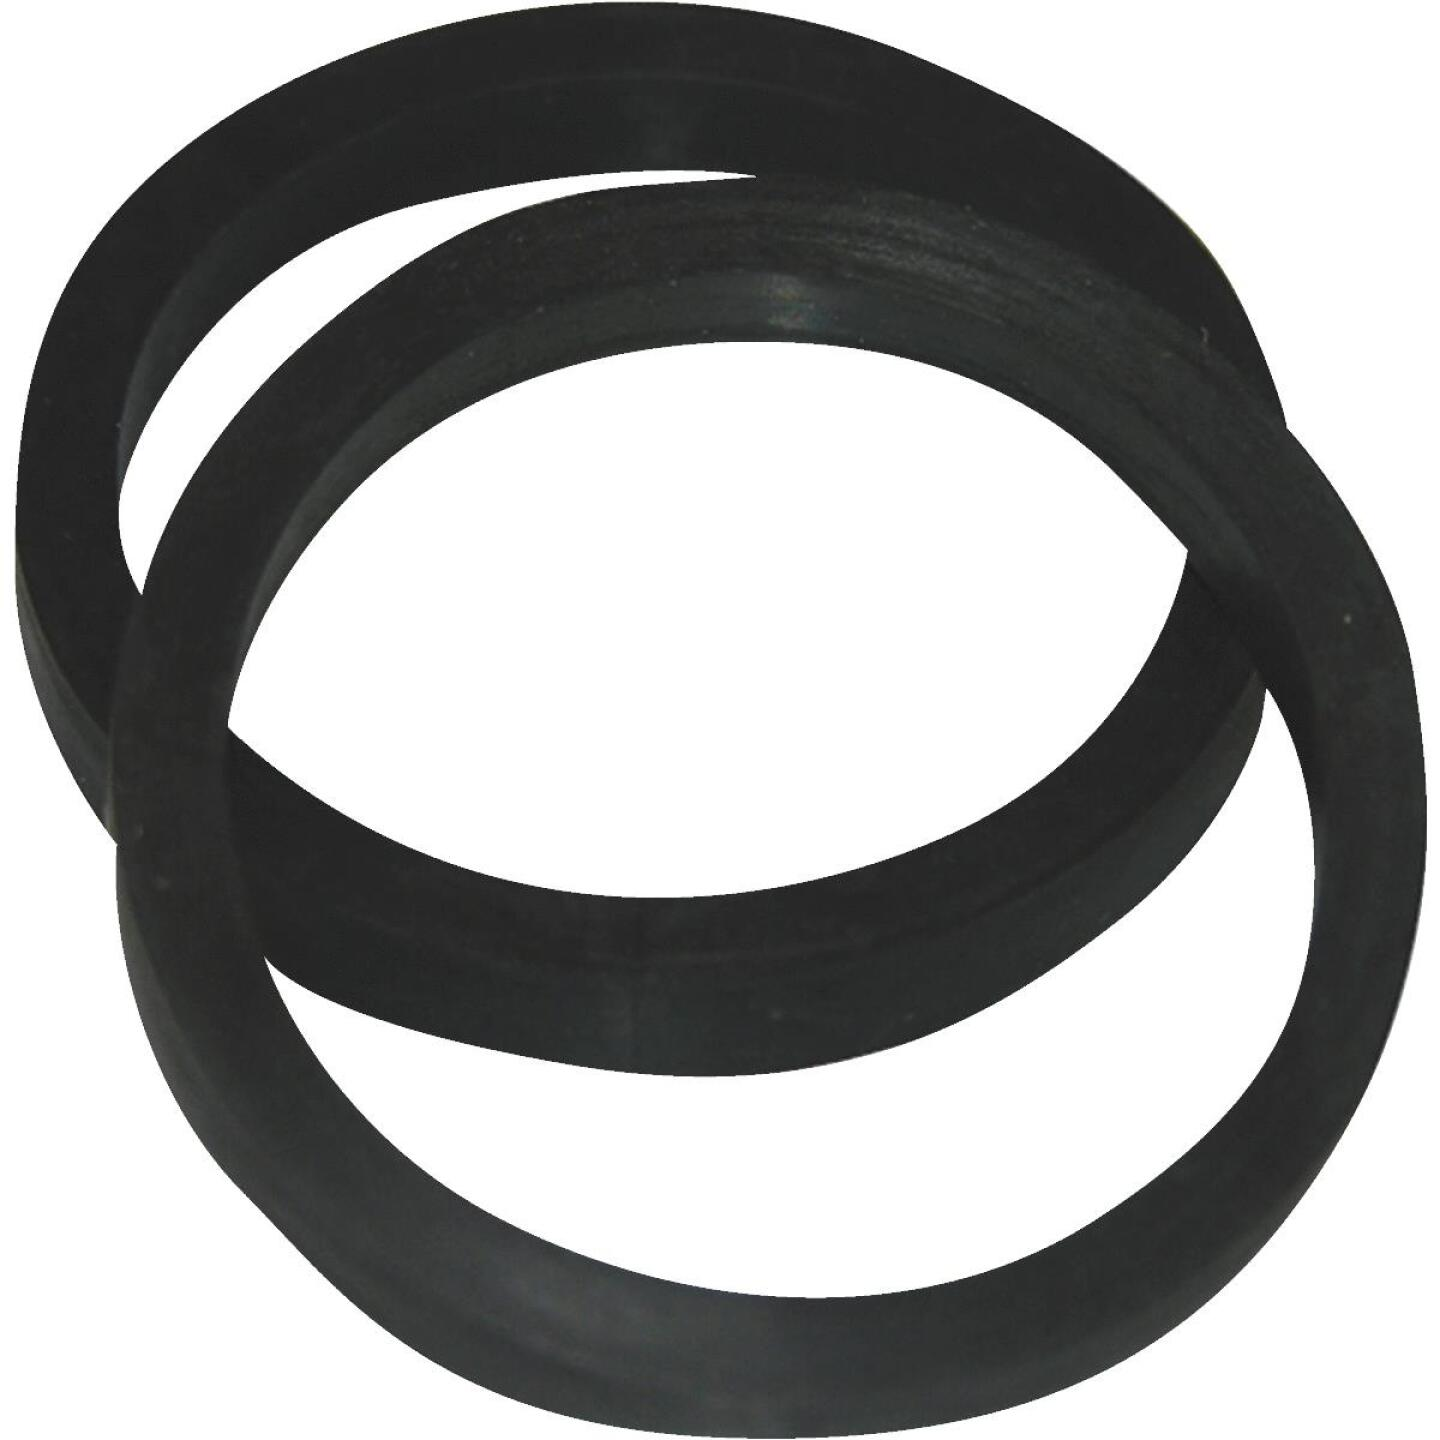 Lasco 1-1/4 In. Black Rubber Slip Joint Washer (2 Pack) Image 1